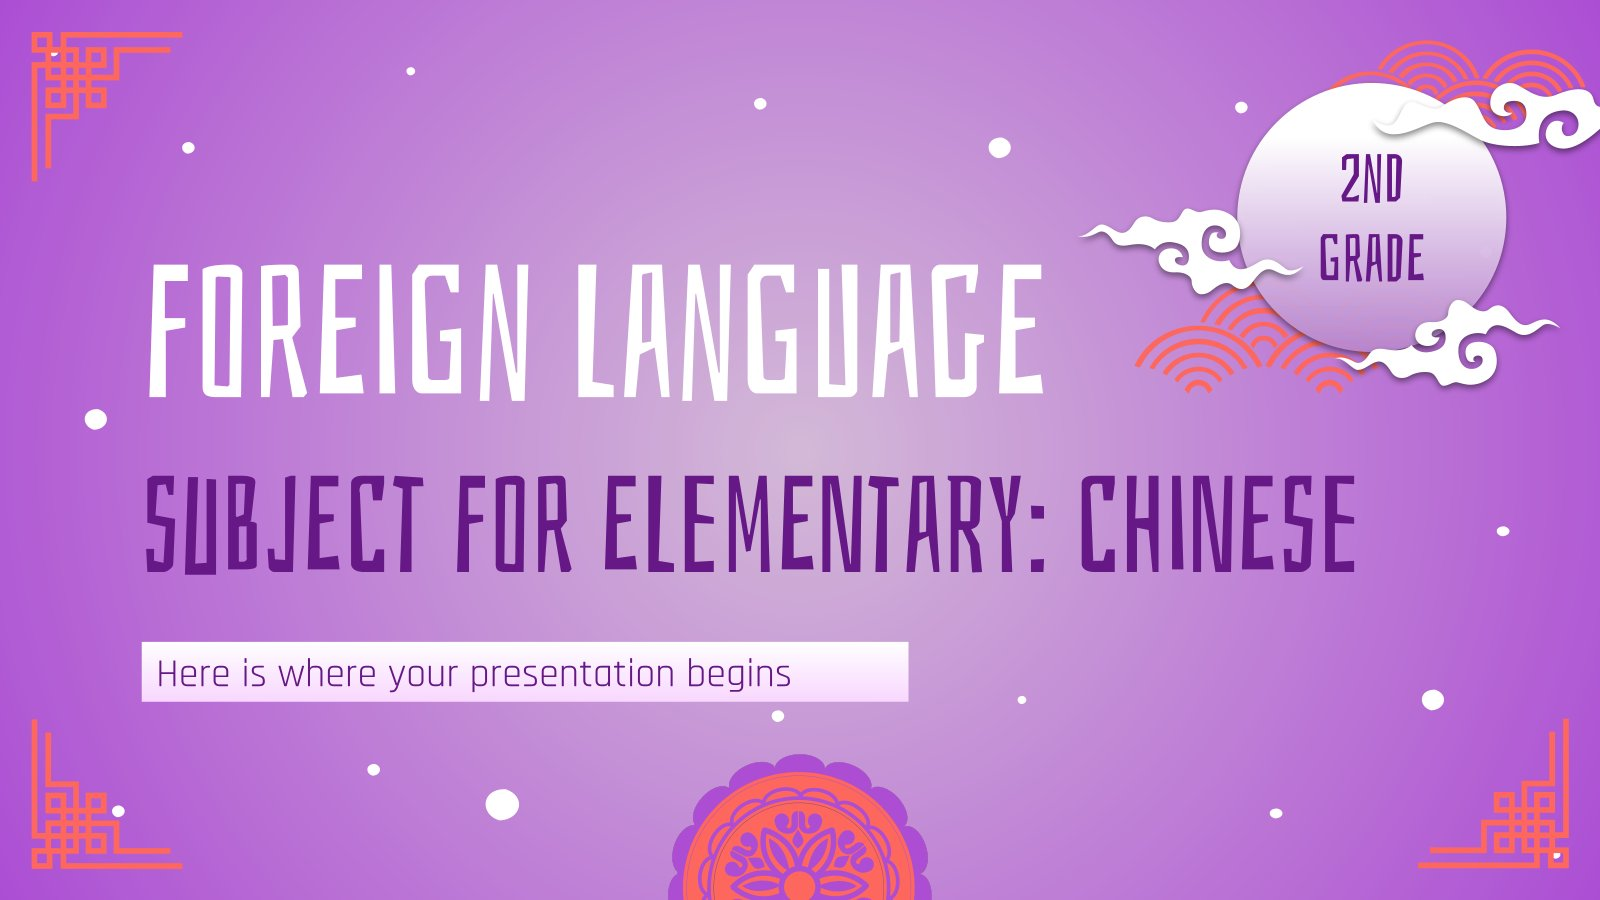 Foreign Language Subject for Elementary - 2nd Grade: Chinese presentation template